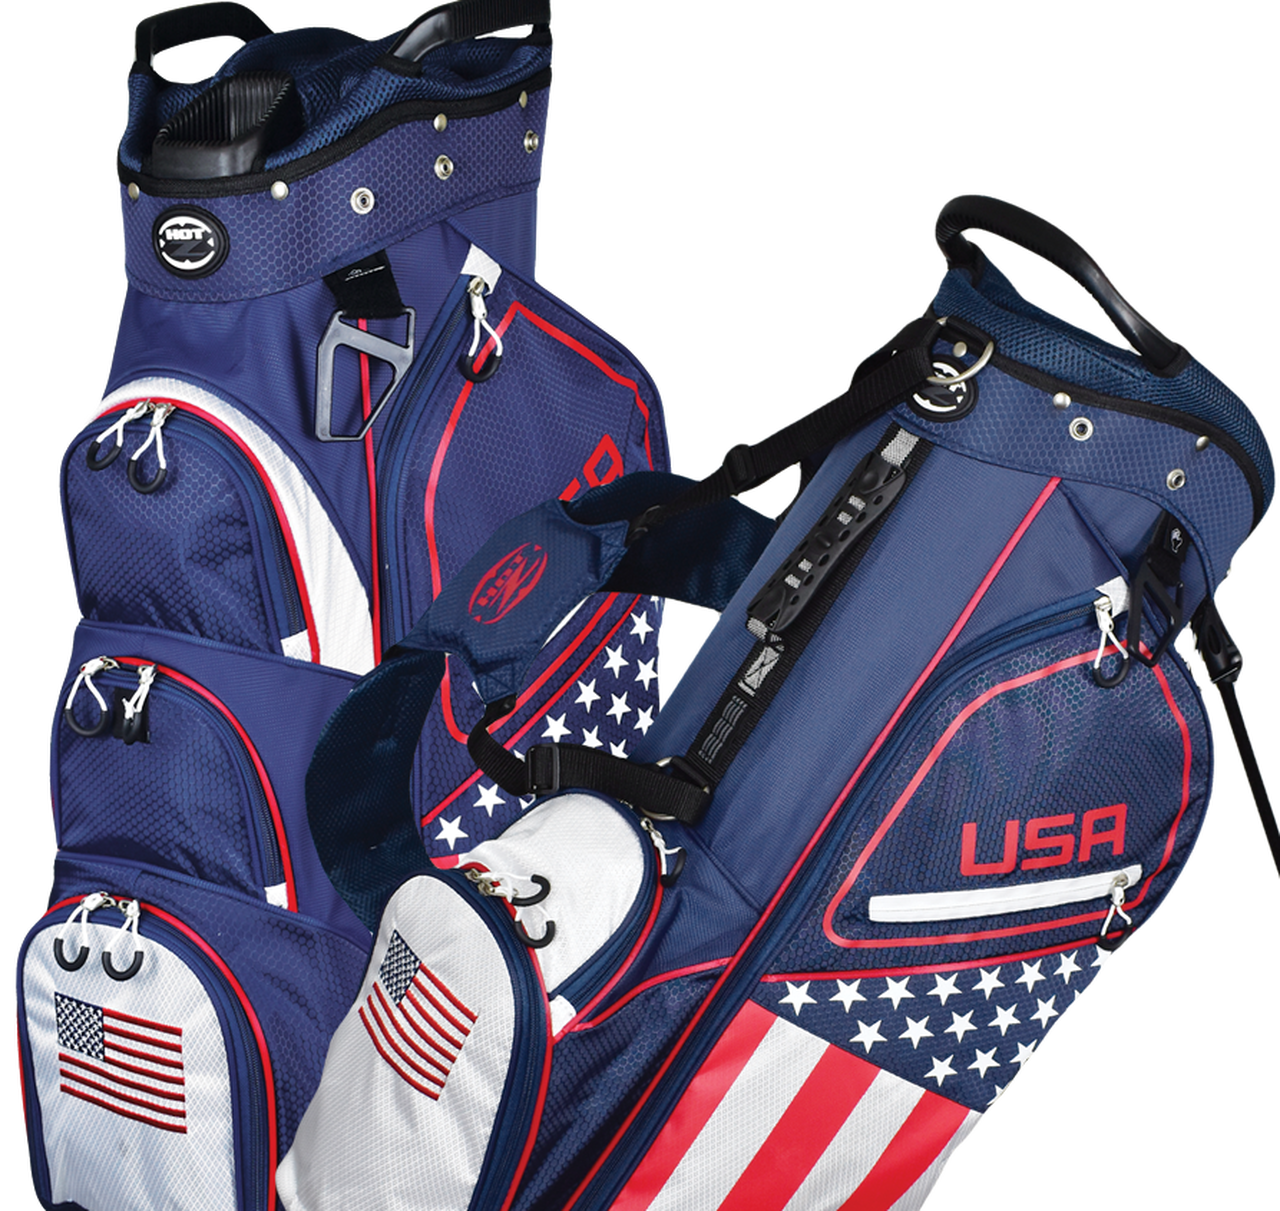 USA Flag Gear